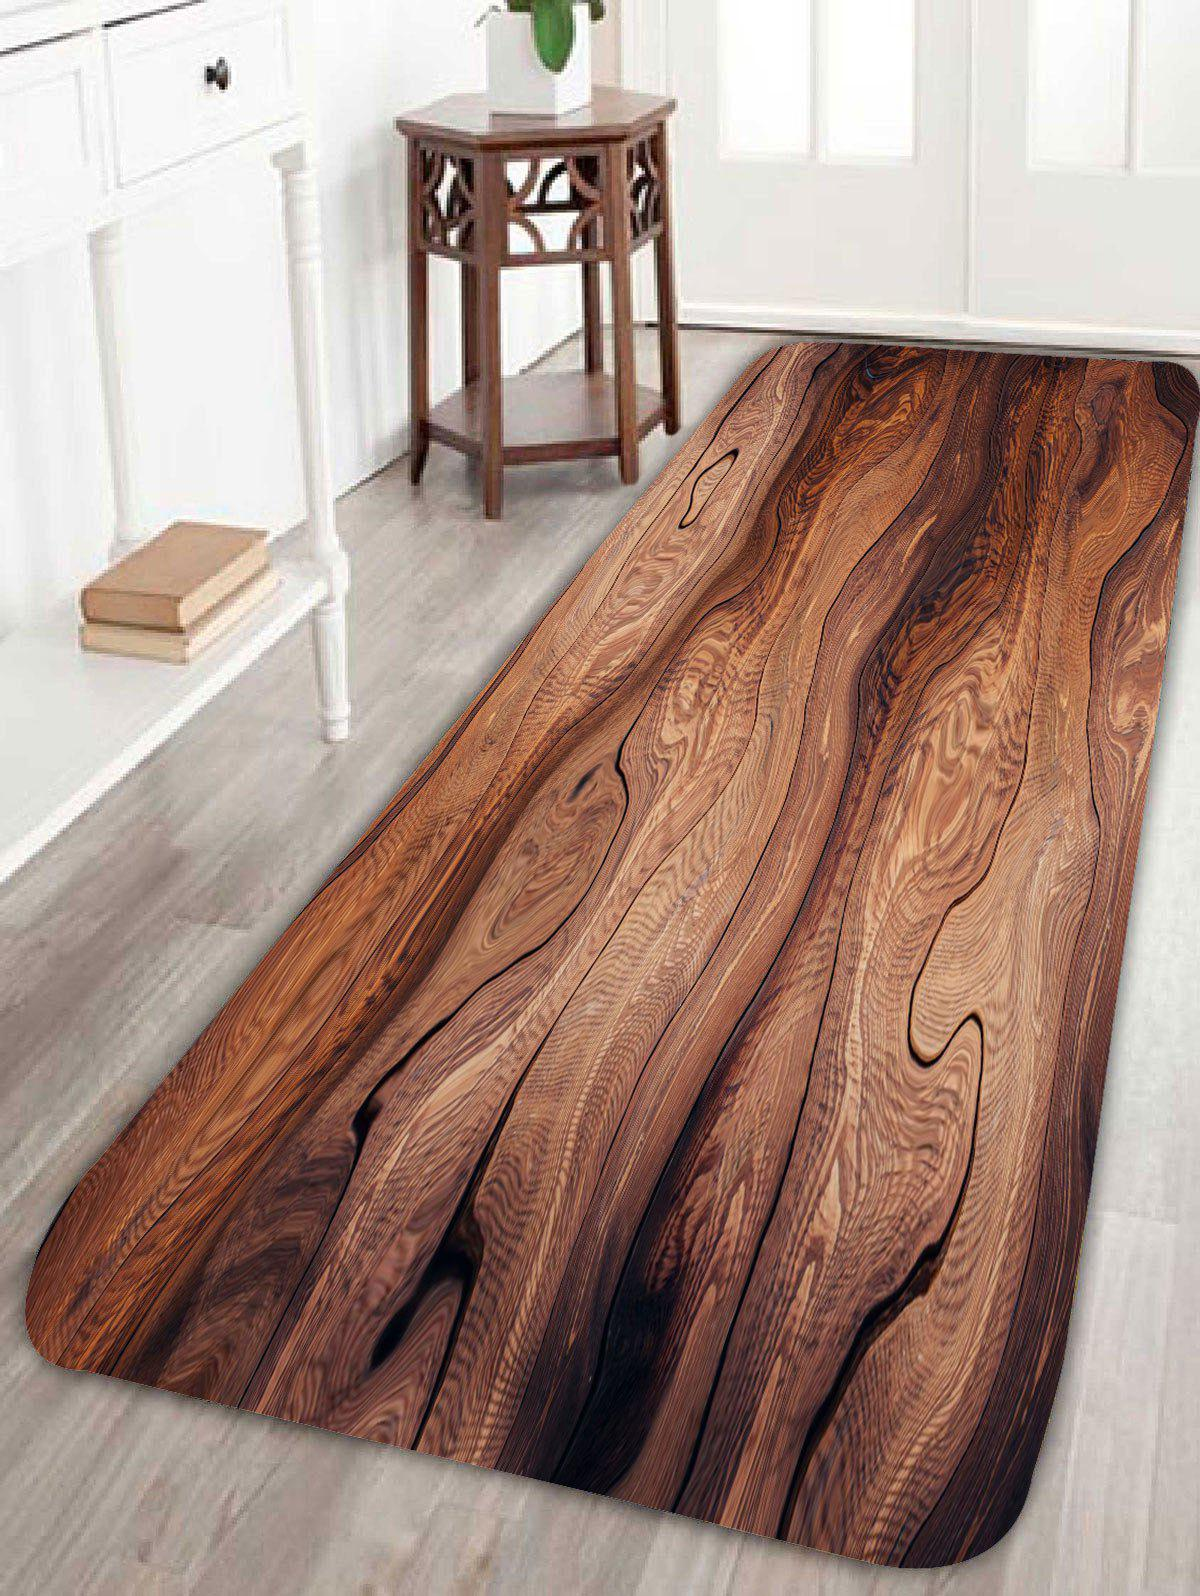 50 Off Goodgrain Large Kitchen Bathroom Floor Area Rug